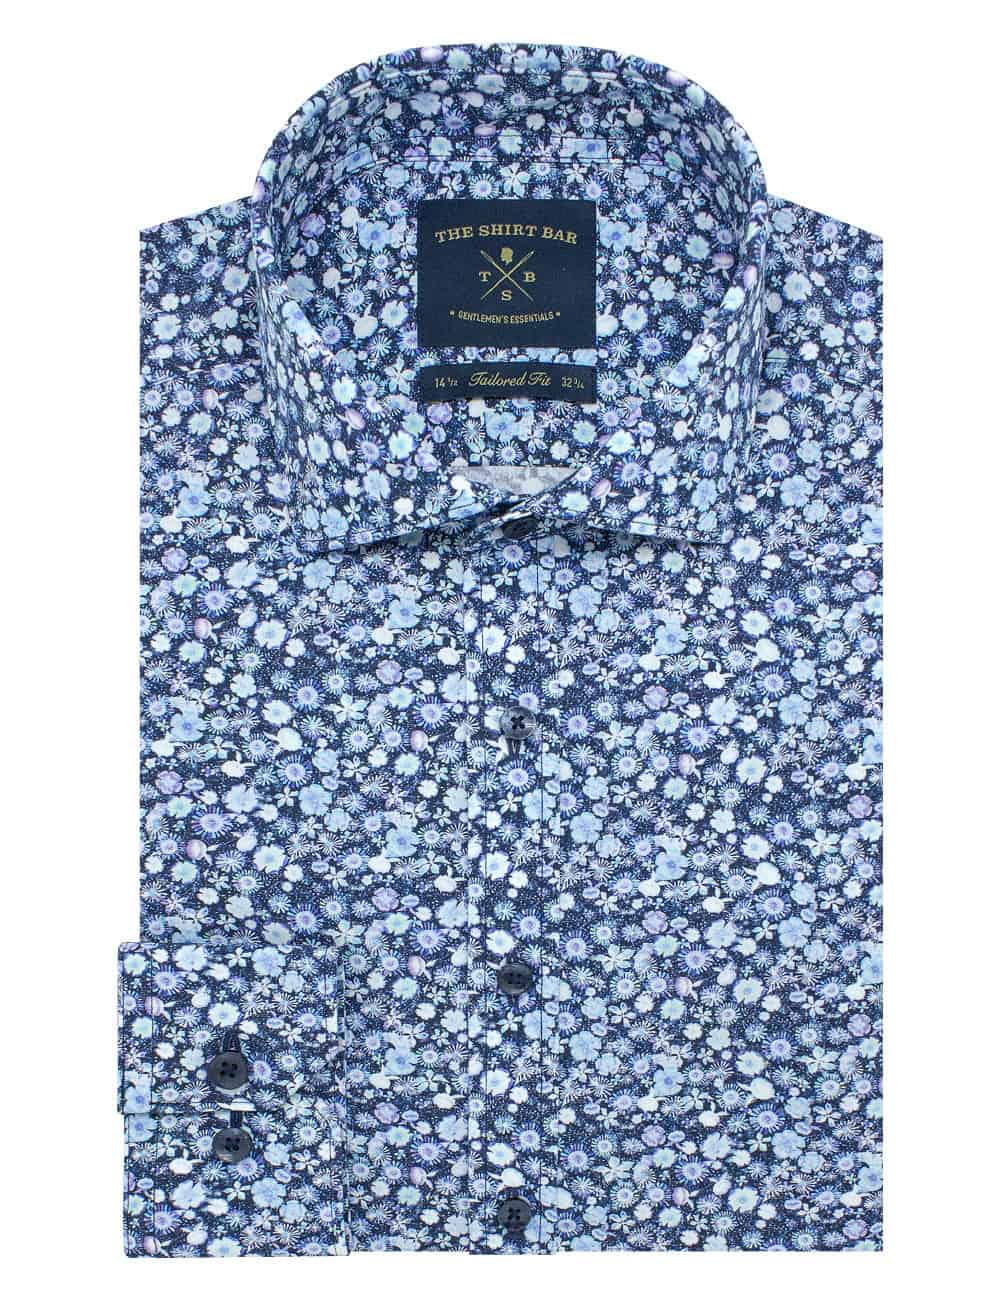 Tailored Fit 100% Premium Cotton Digitally Printed Blue Floral Italian Fabric Silky Finish Long Sleeve Single Cuff Shirt TF1A2.18